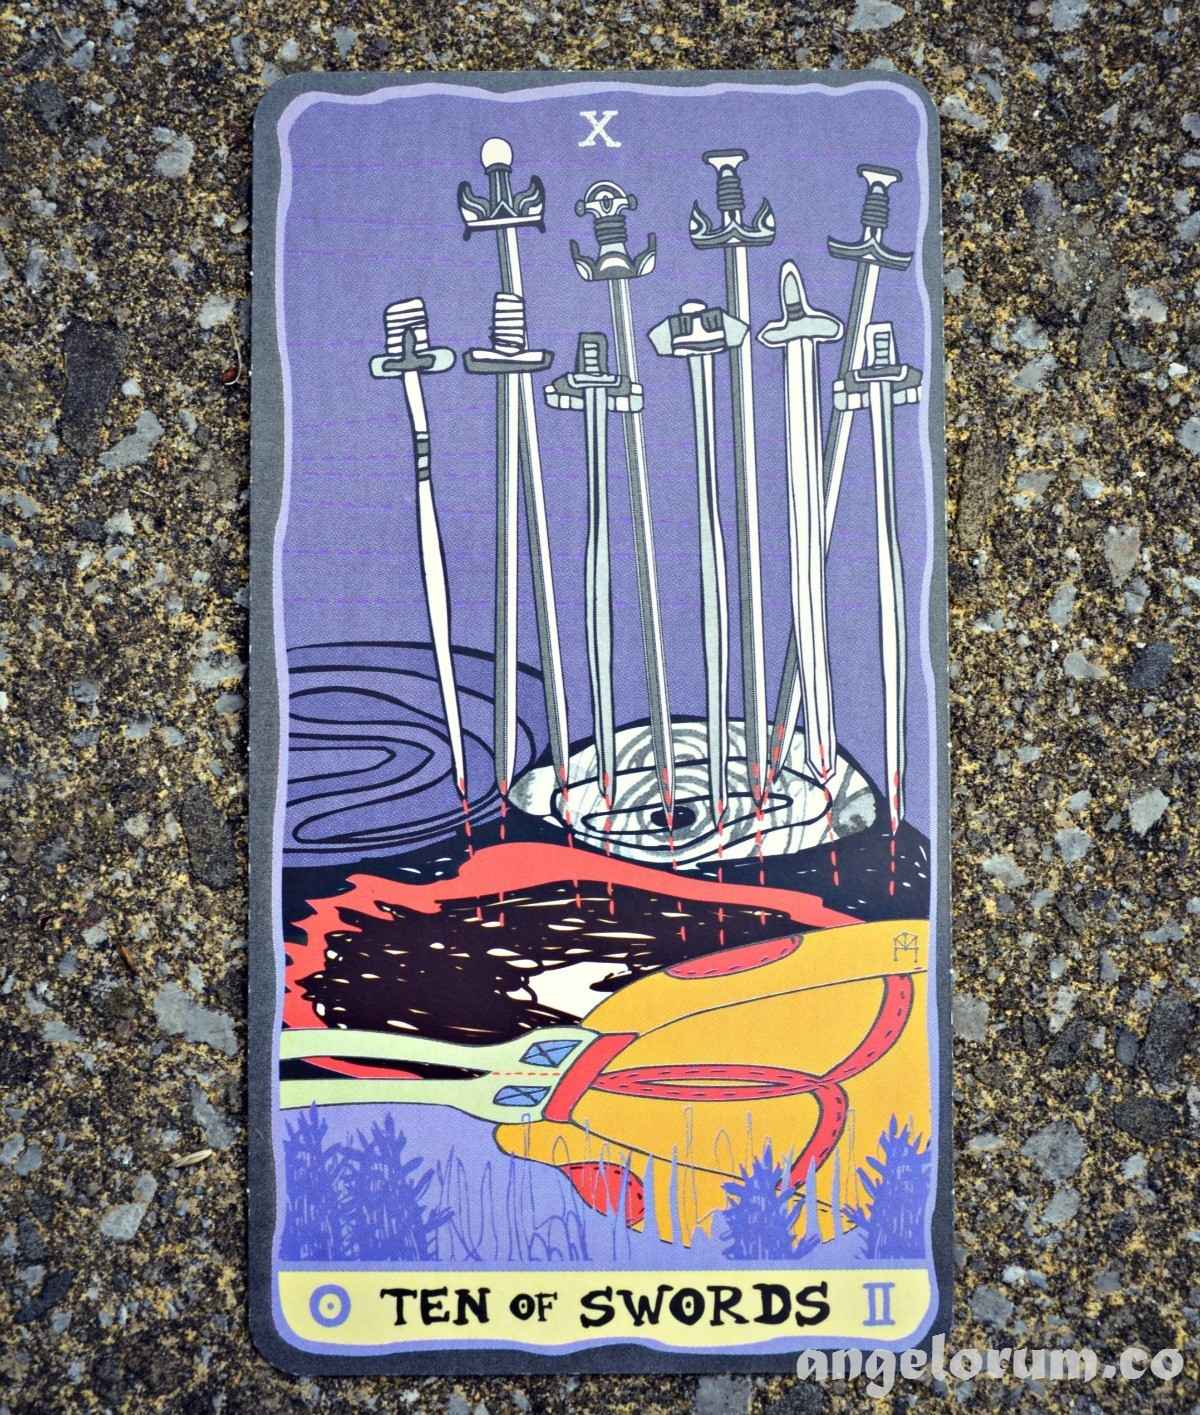 10 of Swords Sakki Sakki Tarot